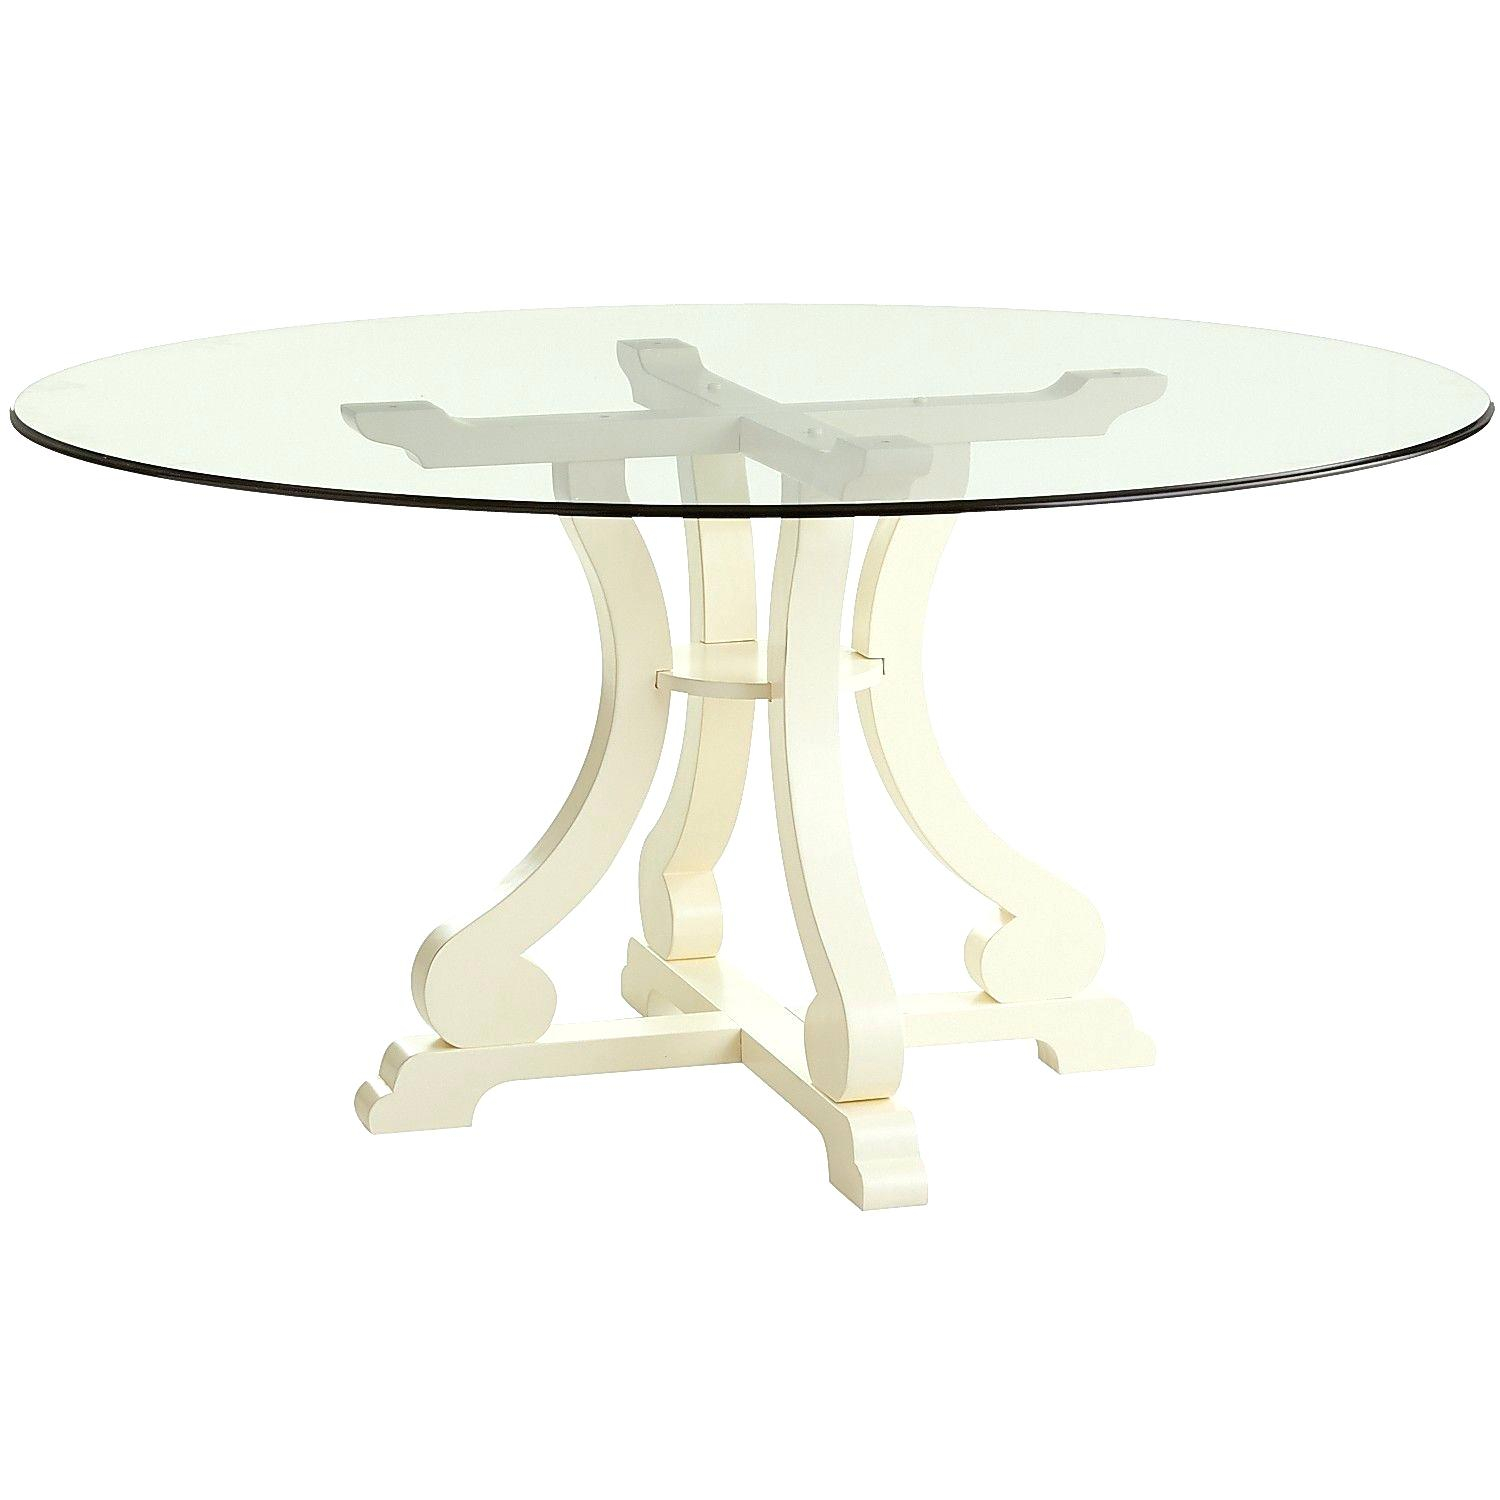 Antique White Round Dining Table – Blogie Throughout 2018 Weathered Gray Owen Pedestal Extending Dining Tables (View 20 of 25)